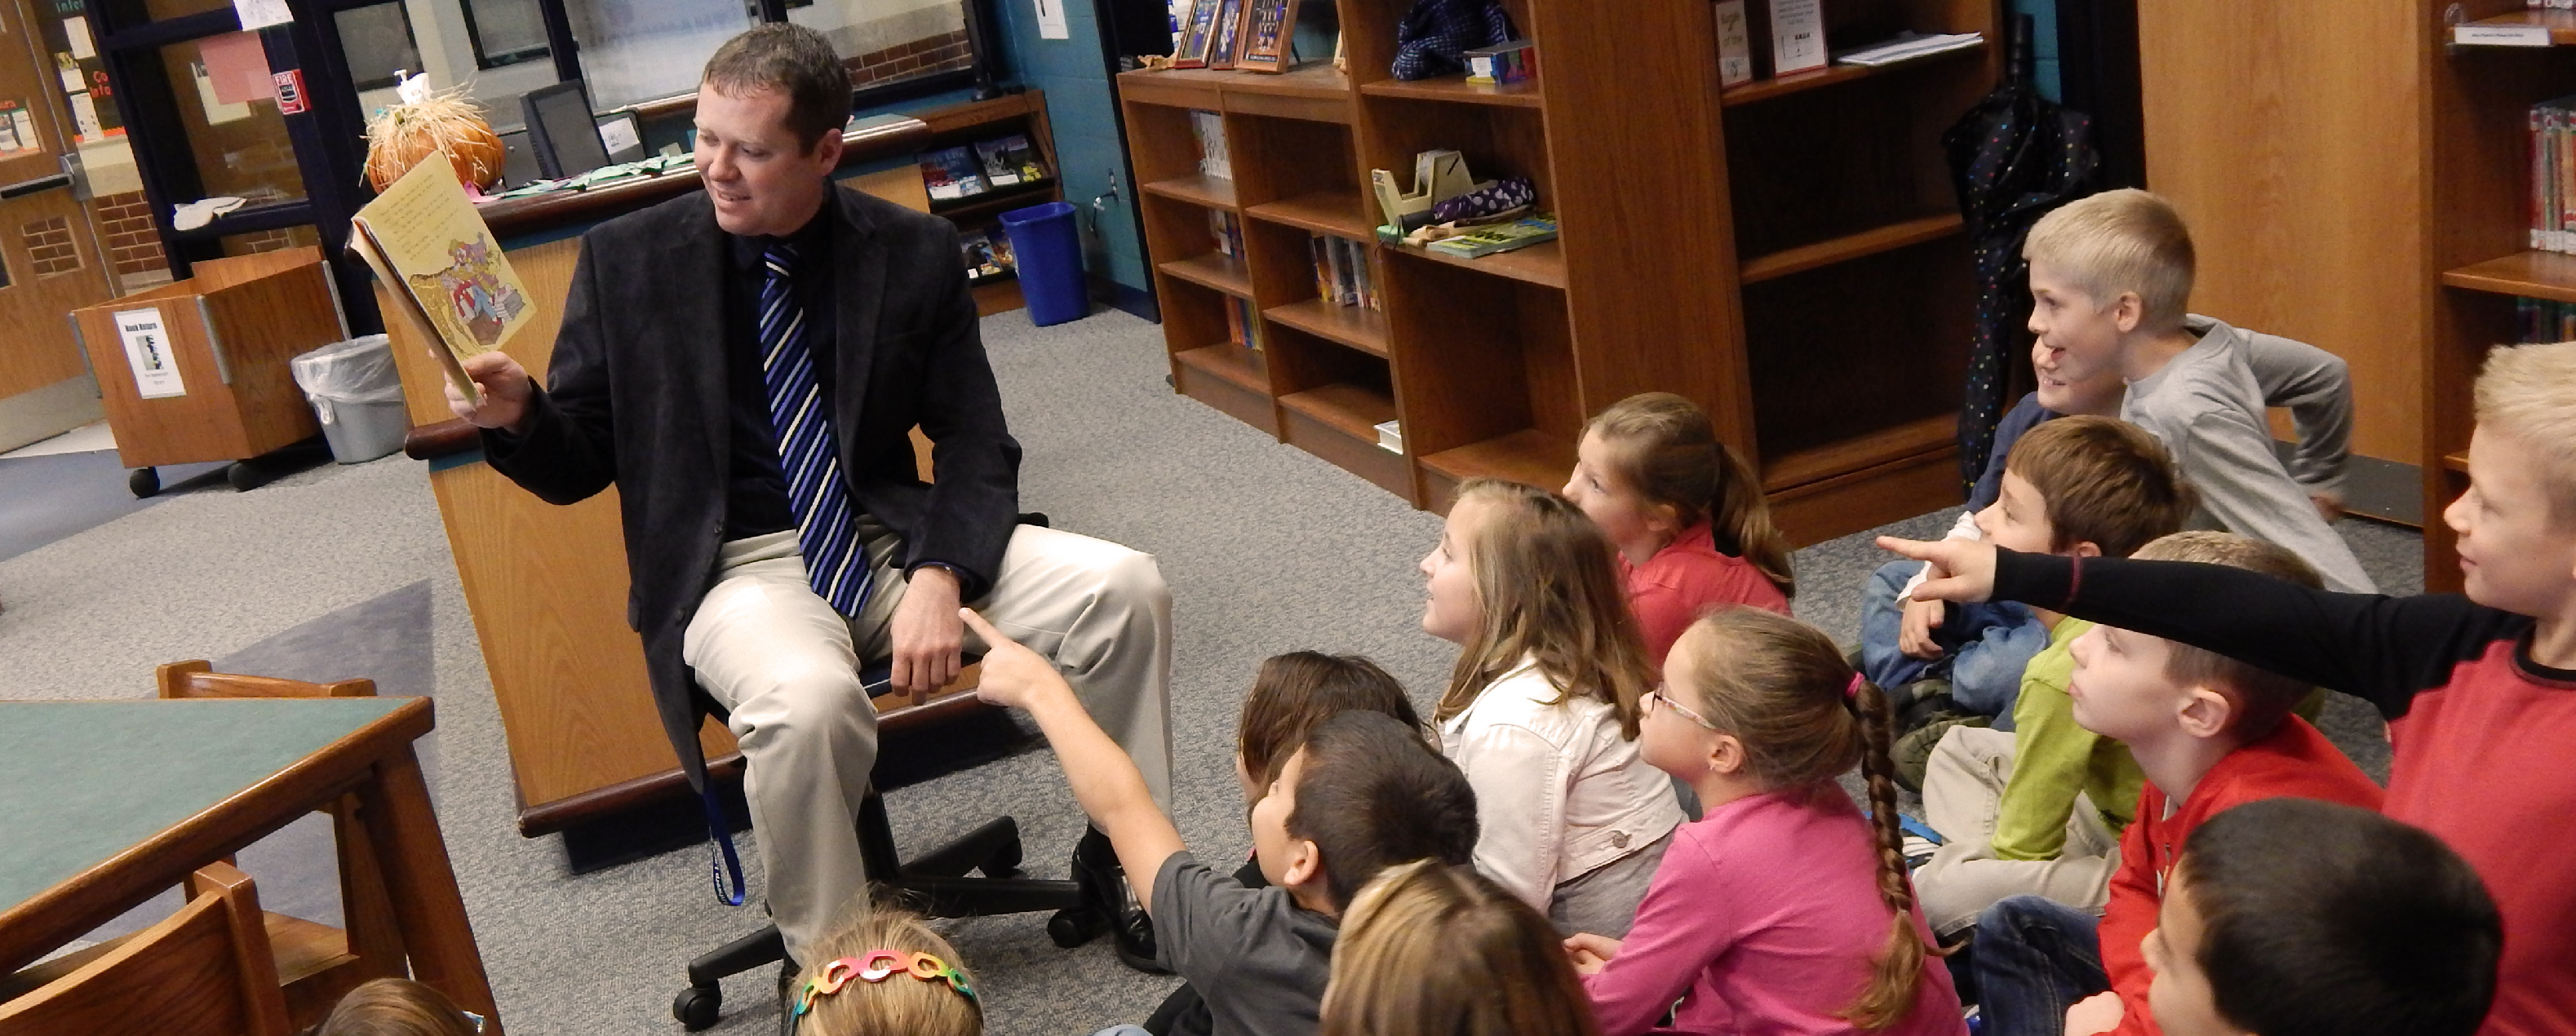 Man in business attire sitting on a chair with a book in front of a row of children who are pointing at the book and watching him share the book with excited expressions on their faces.